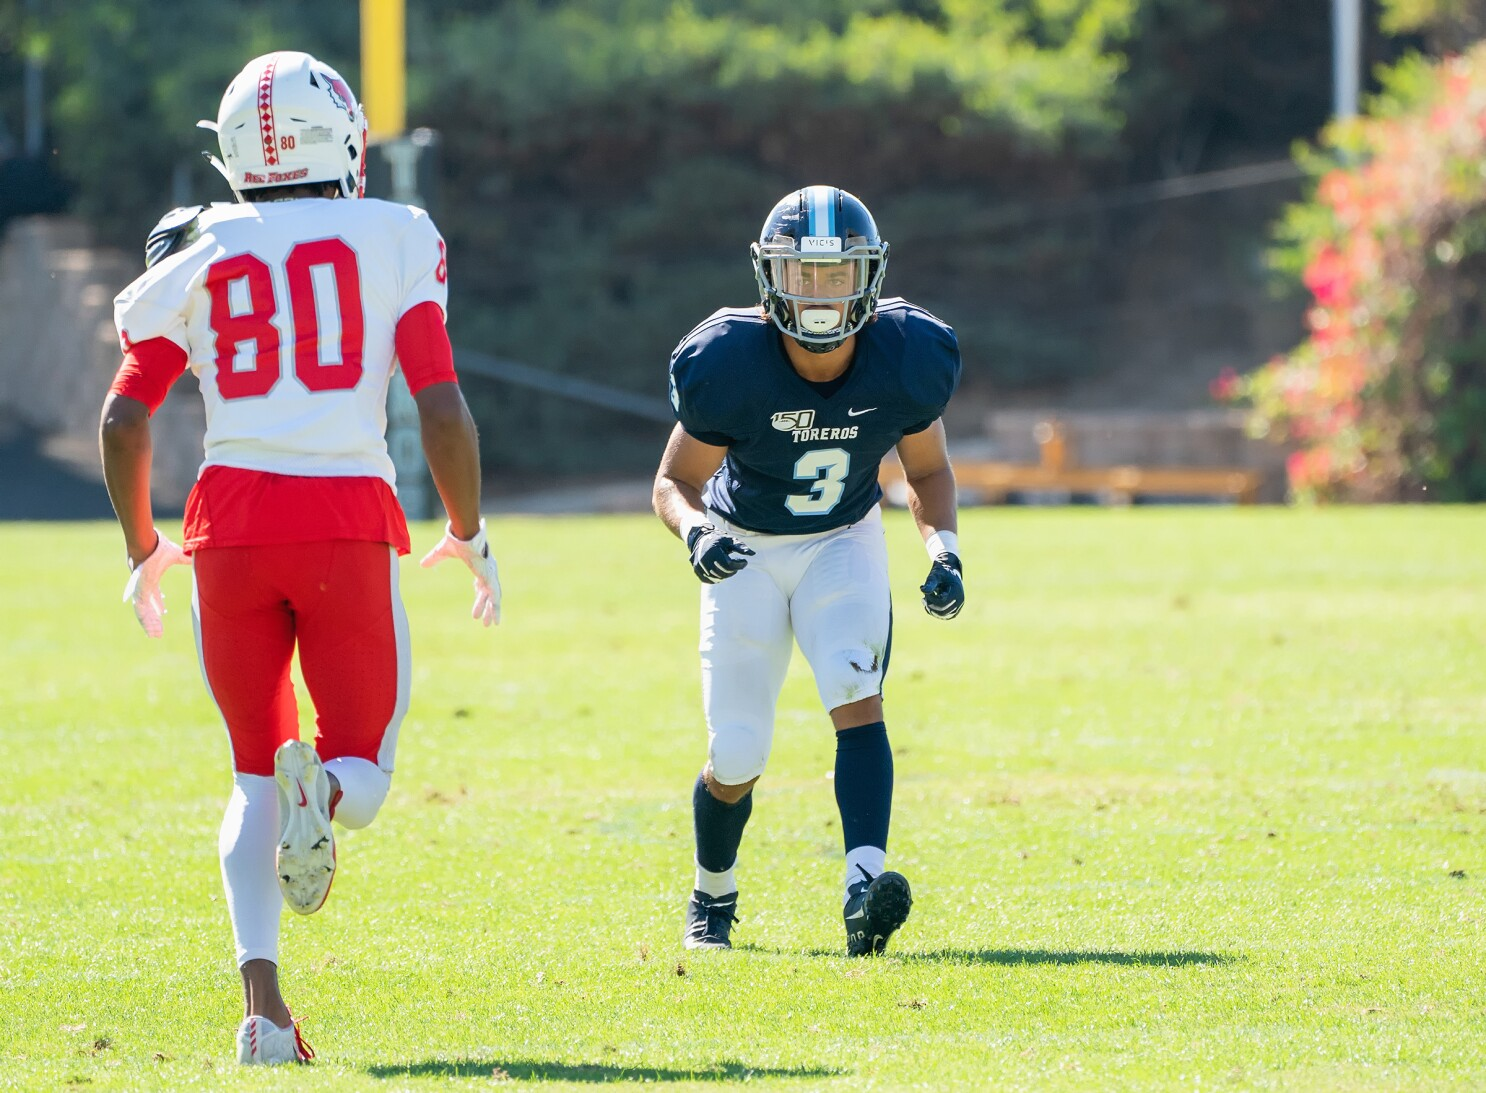 Toreros defensive back inspired by his first name